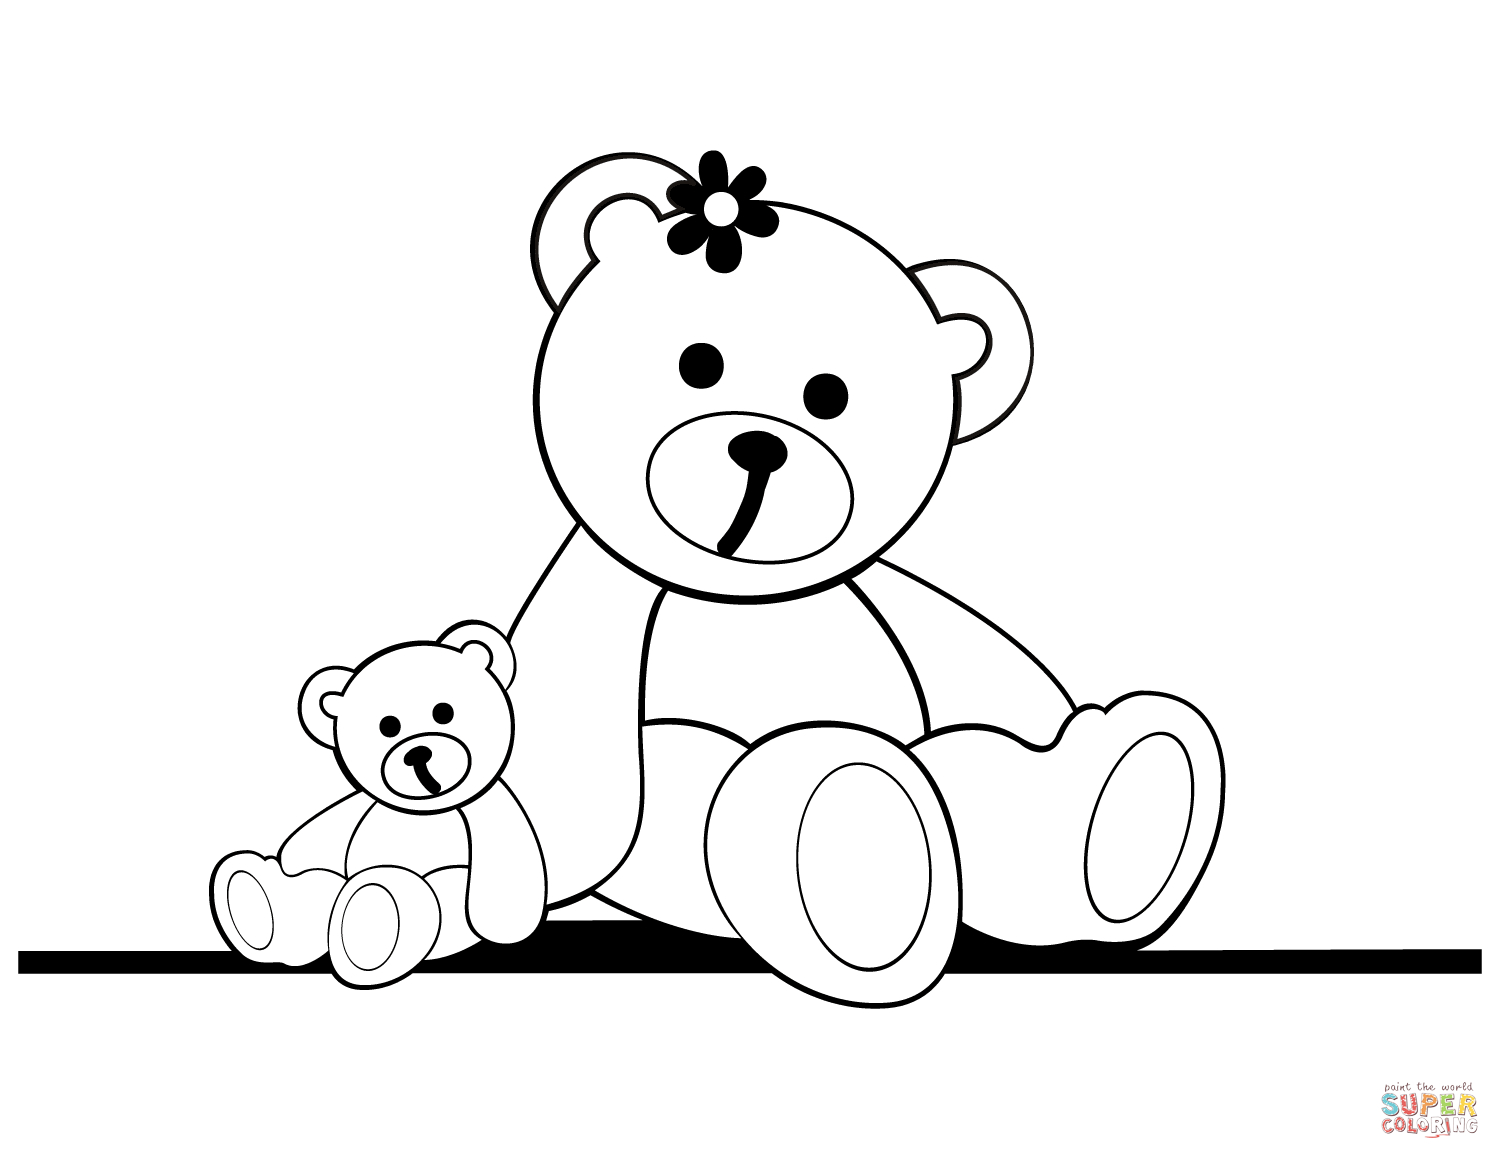 Teddy Bear Coloring Pages | Free Coloring Pages - Teddy Bear Coloring Pages Free Printable